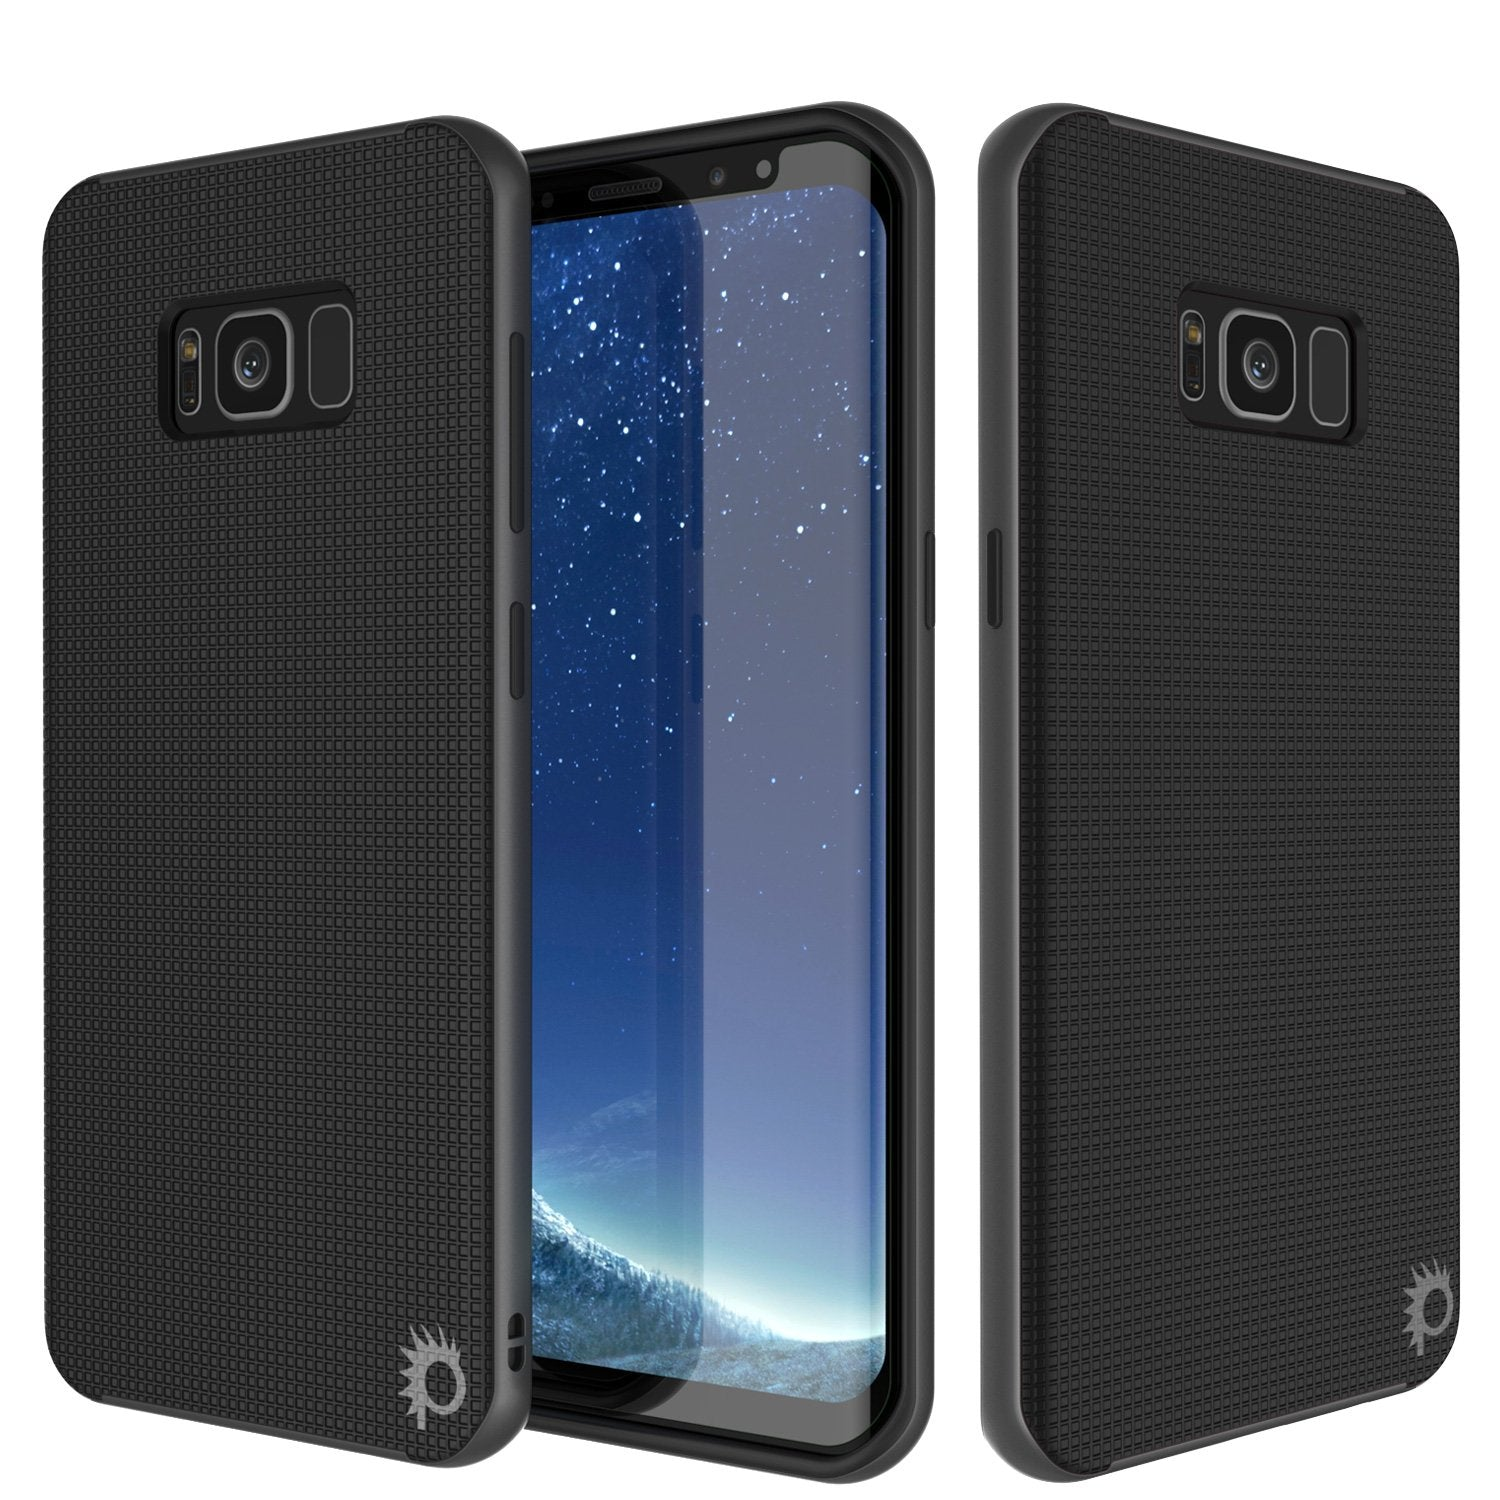 Galaxy S8 PLUS Case, PunkCase [Stealth Series] Hybrid 3-Piece Shockproof Dual Layer Cover [Non-Slip] [Soft TPU + PC Bumper] with PUNKSHIELD Screen Protector for Samsung S8+ [Grey]